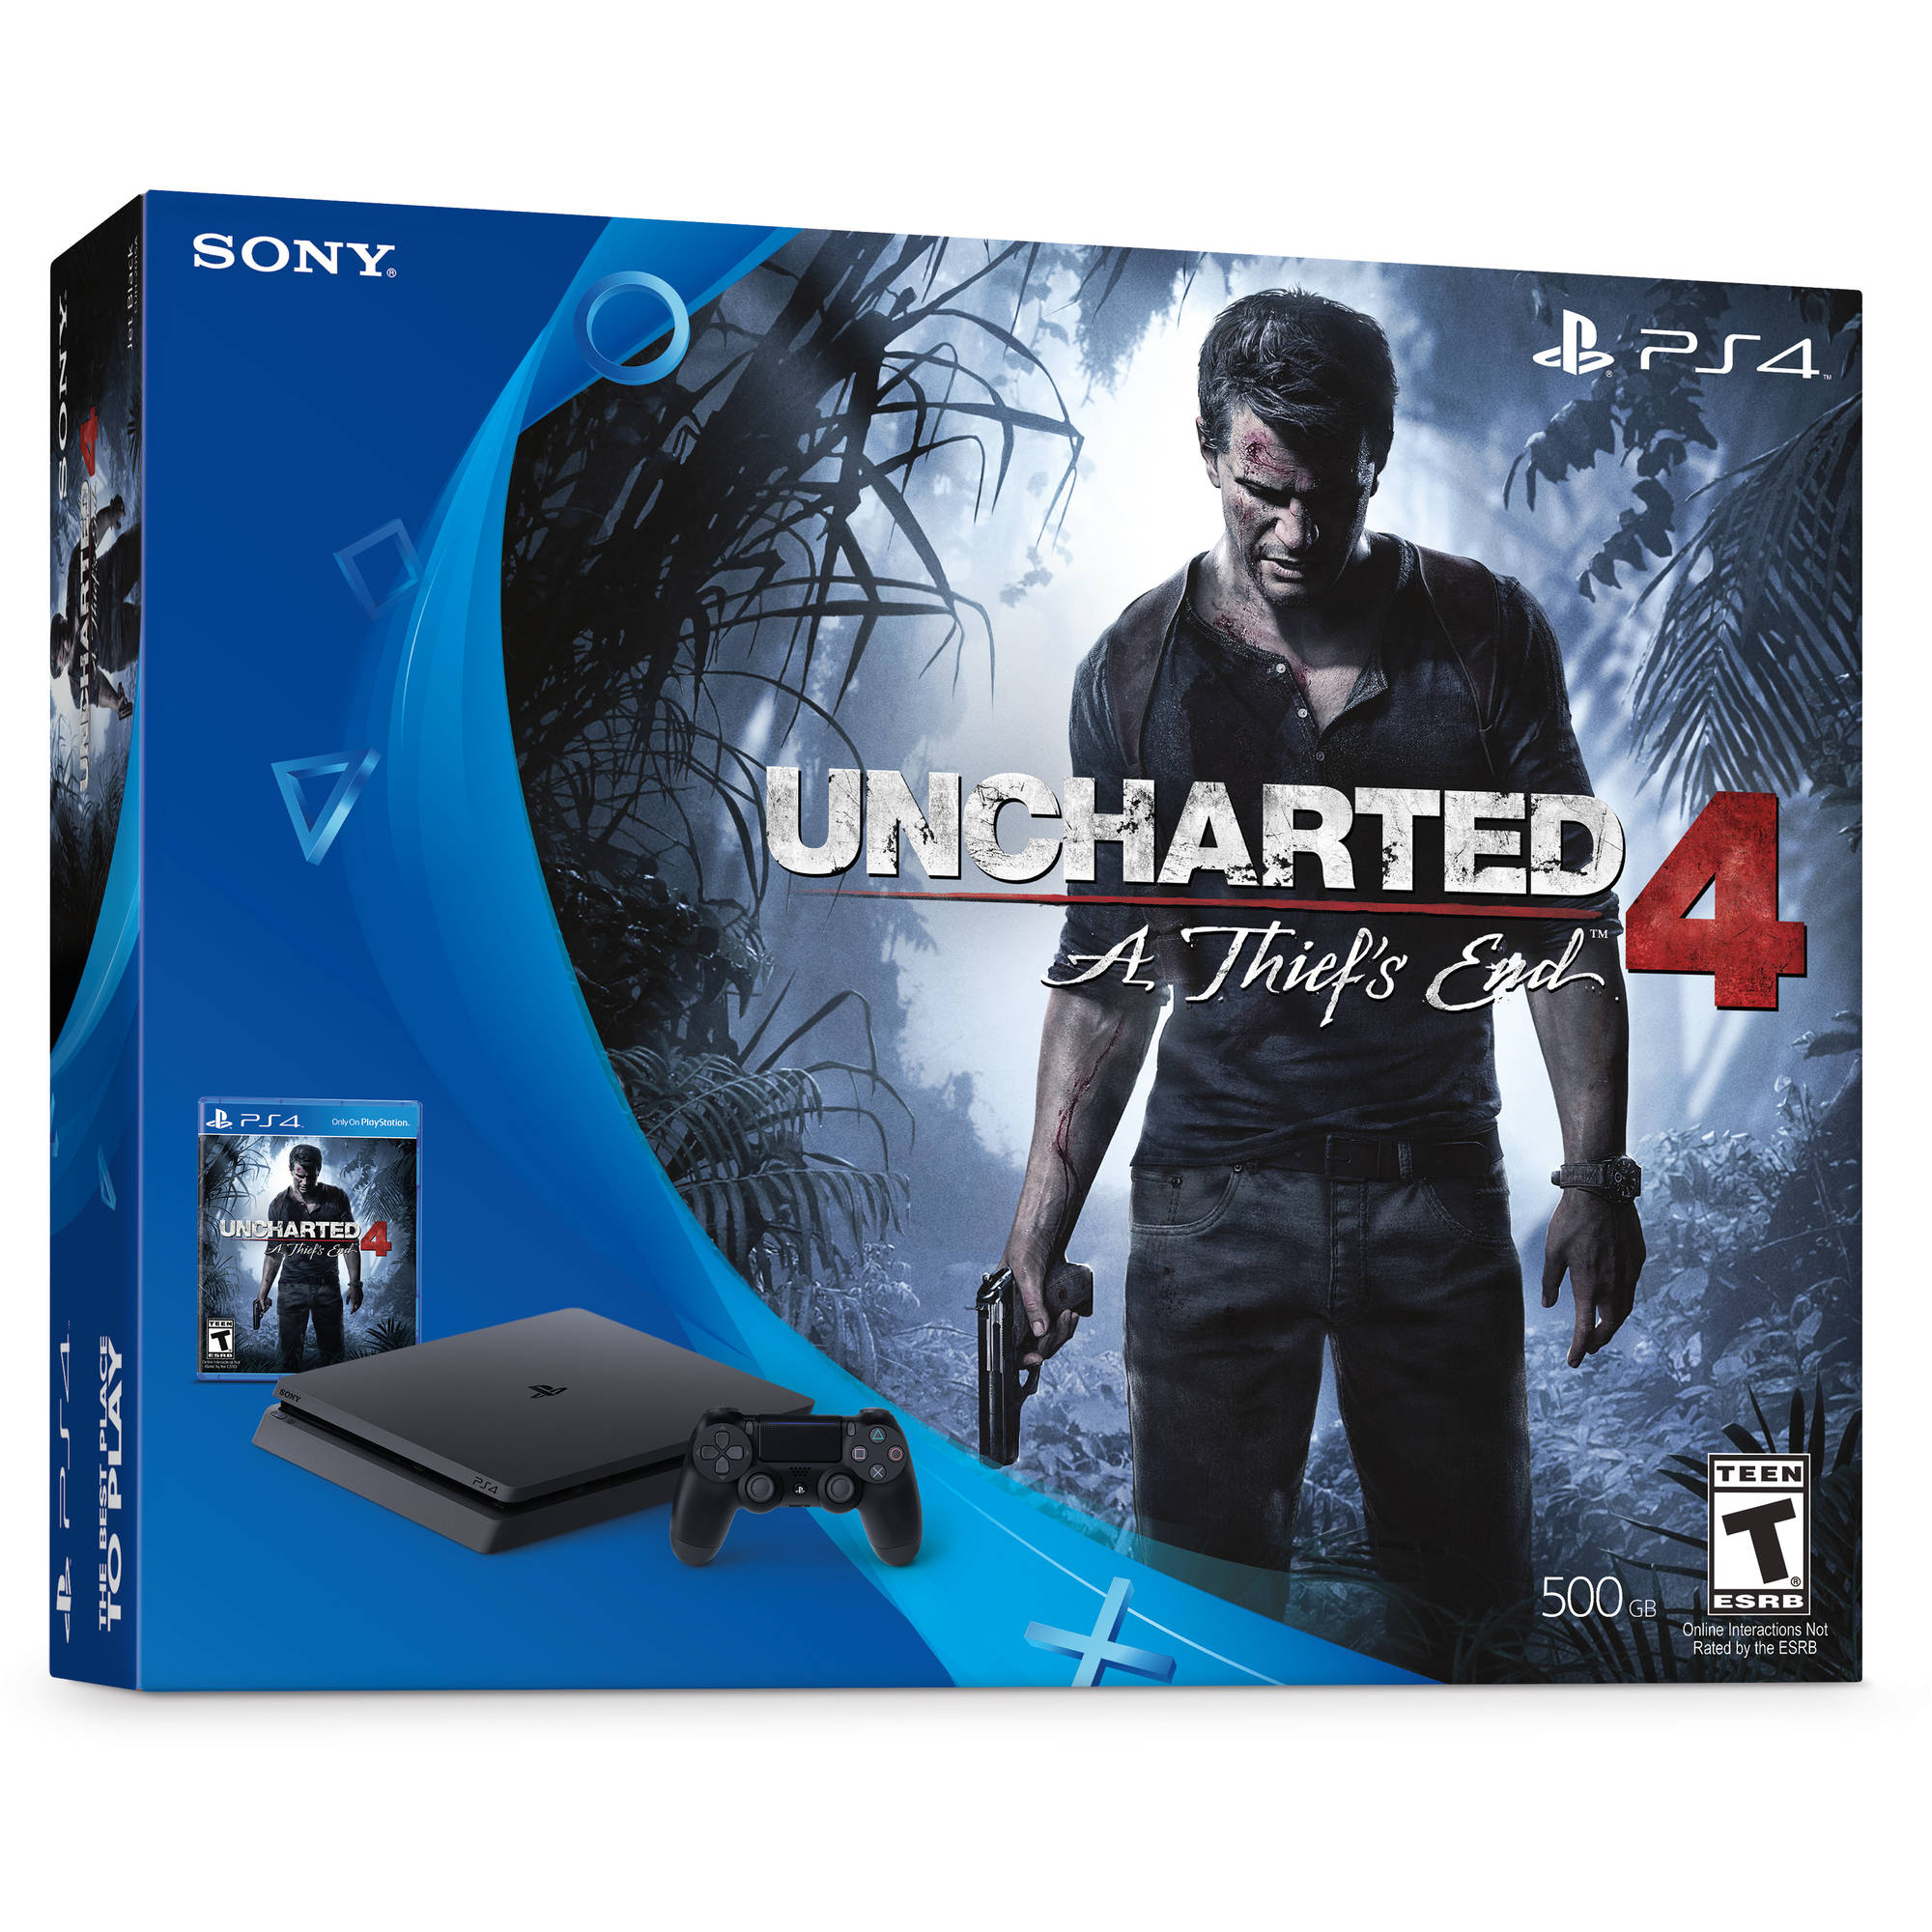 PlayStation 4 Slim 500GB Uncharted 4 Bundle